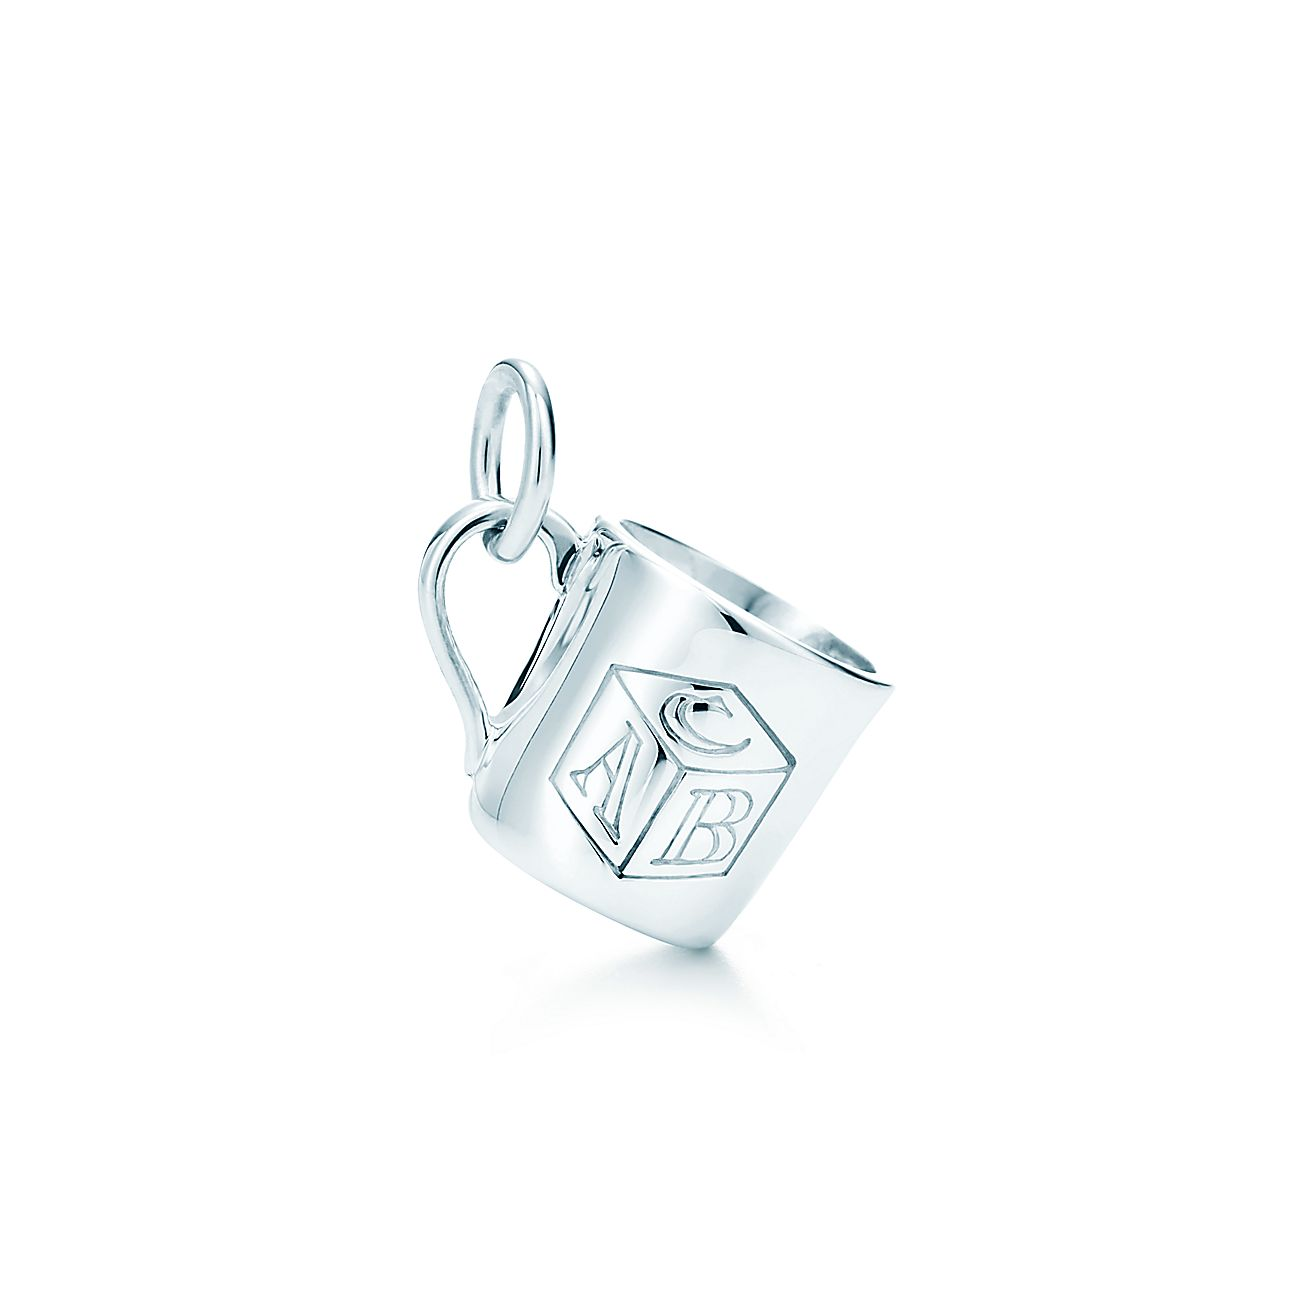 Tiffany Baby Gifts Australia : Abc baby cup charm in sterling silver tiffany co